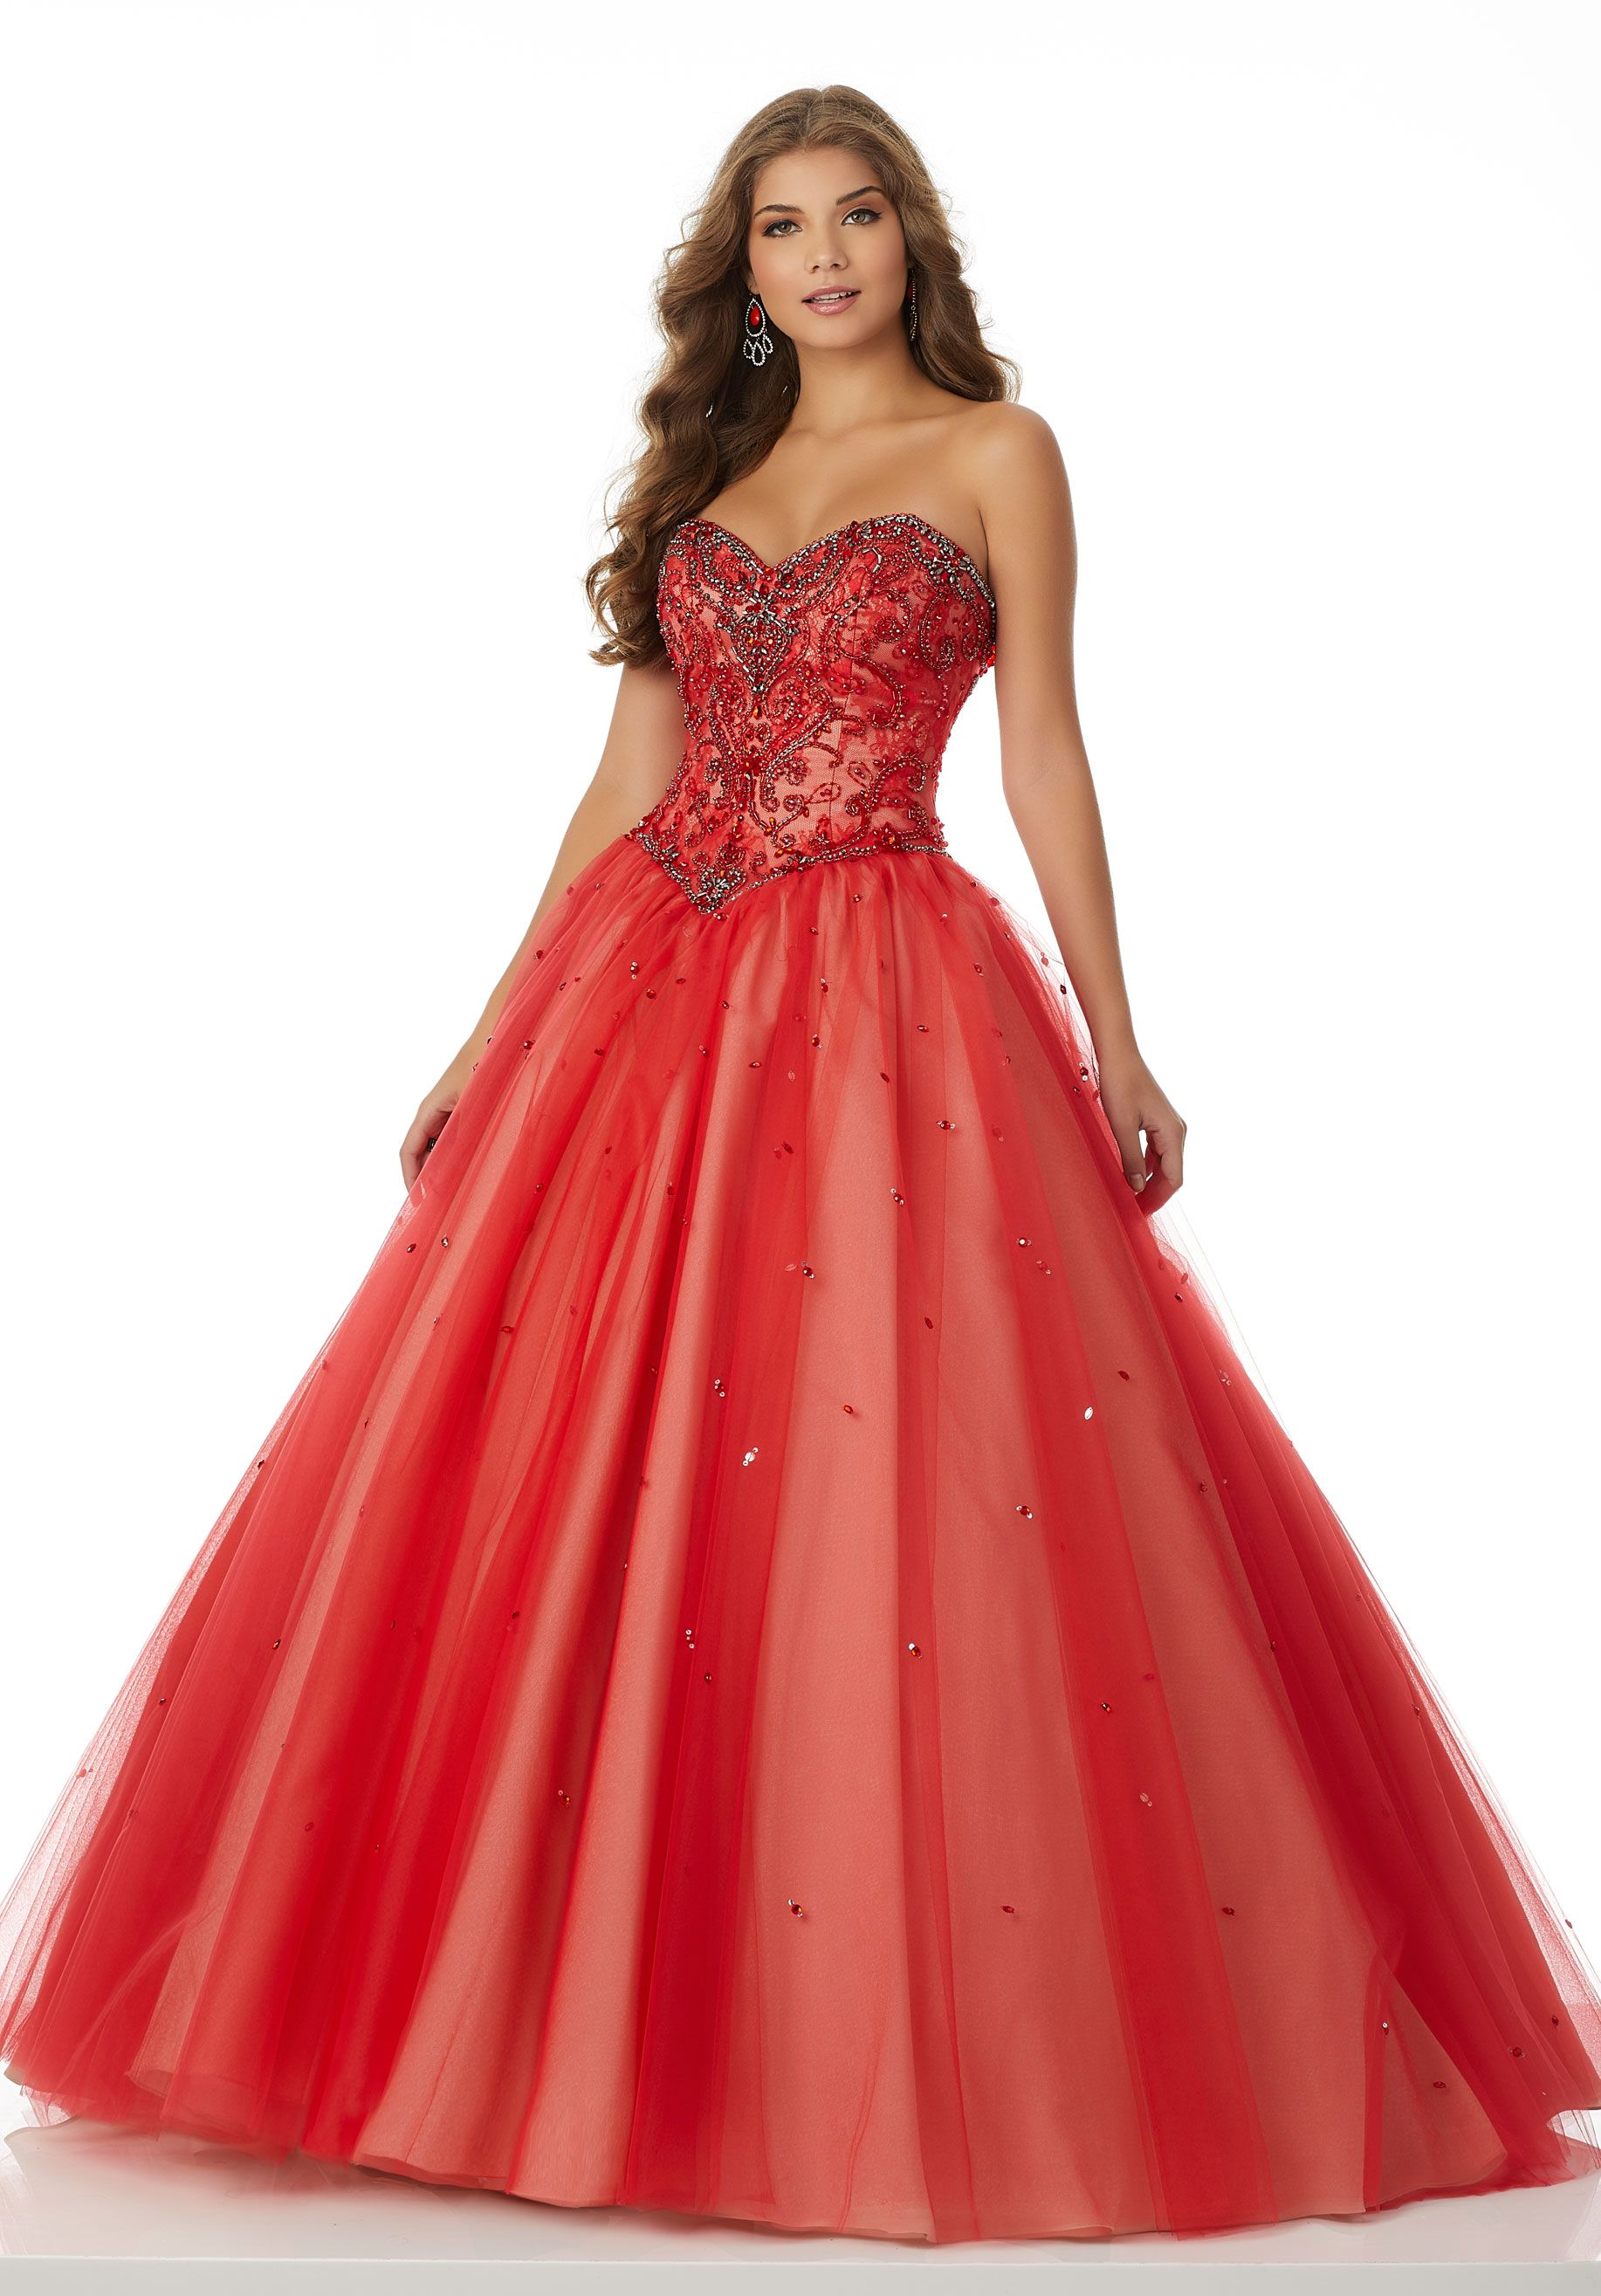 Classic tulle ballgown featuring a beaded lace sweetheart bodice and